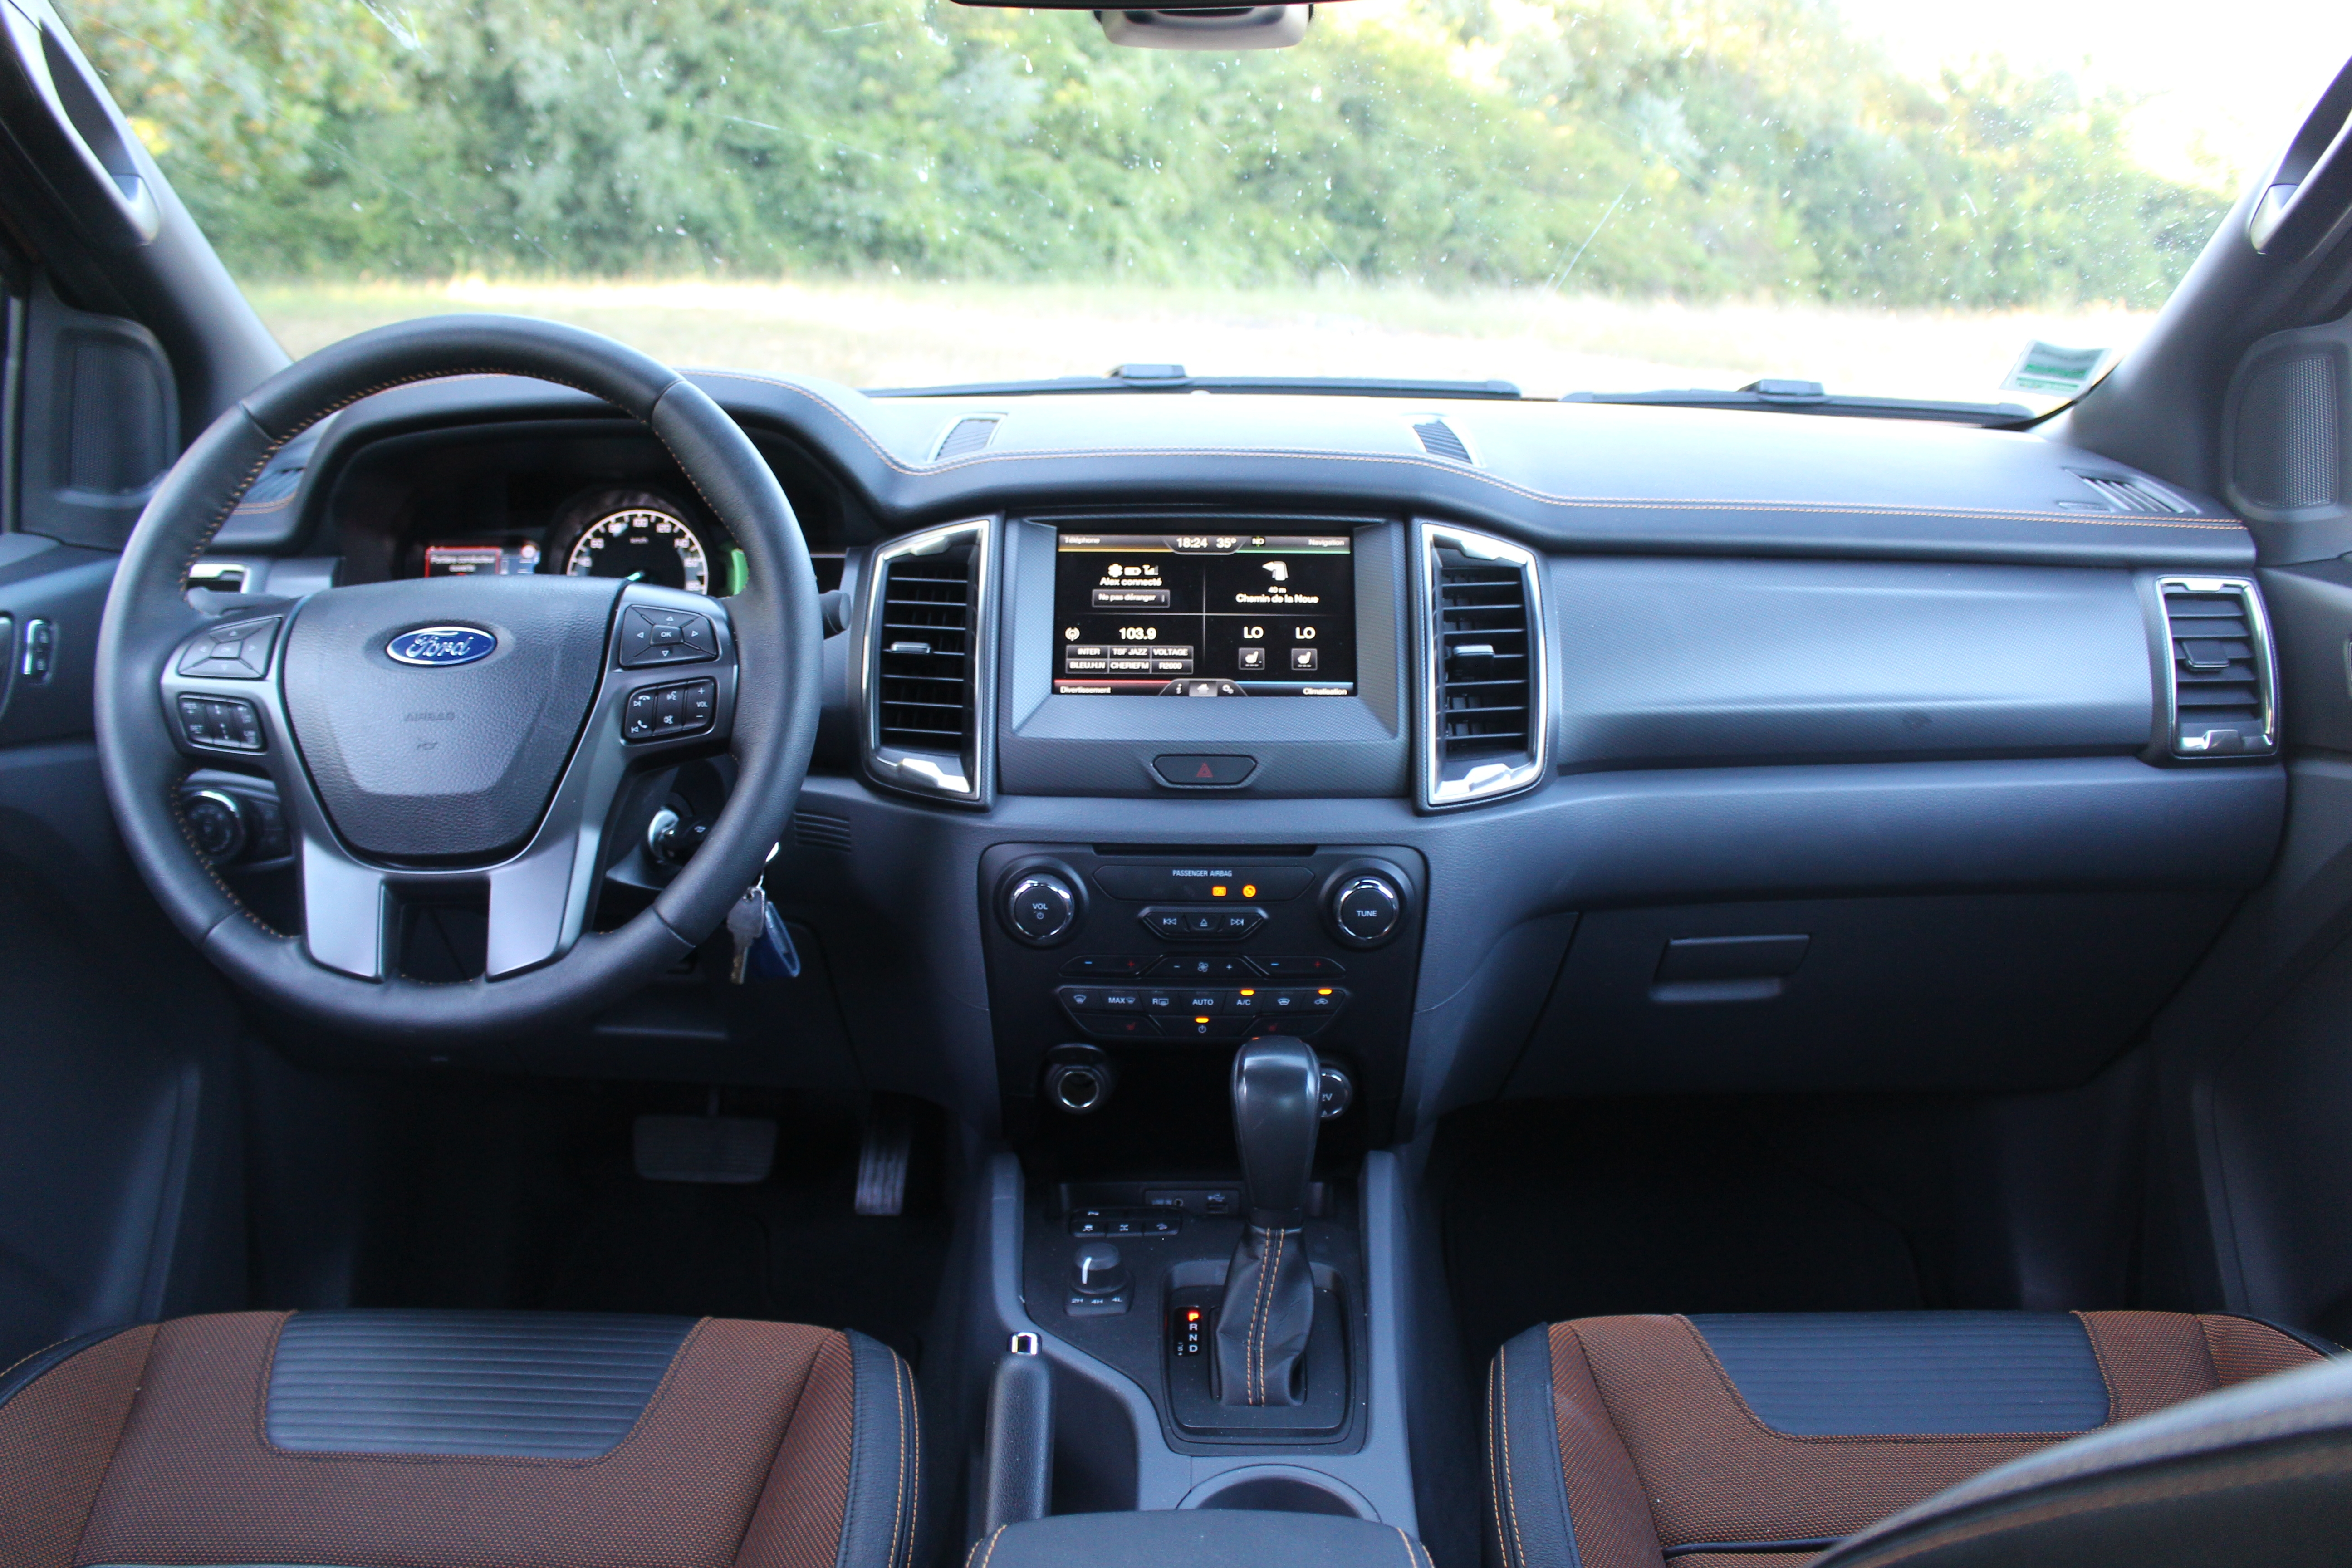 Essai vid o ford ranger 2016 force sp ciale for Interieur ford ranger